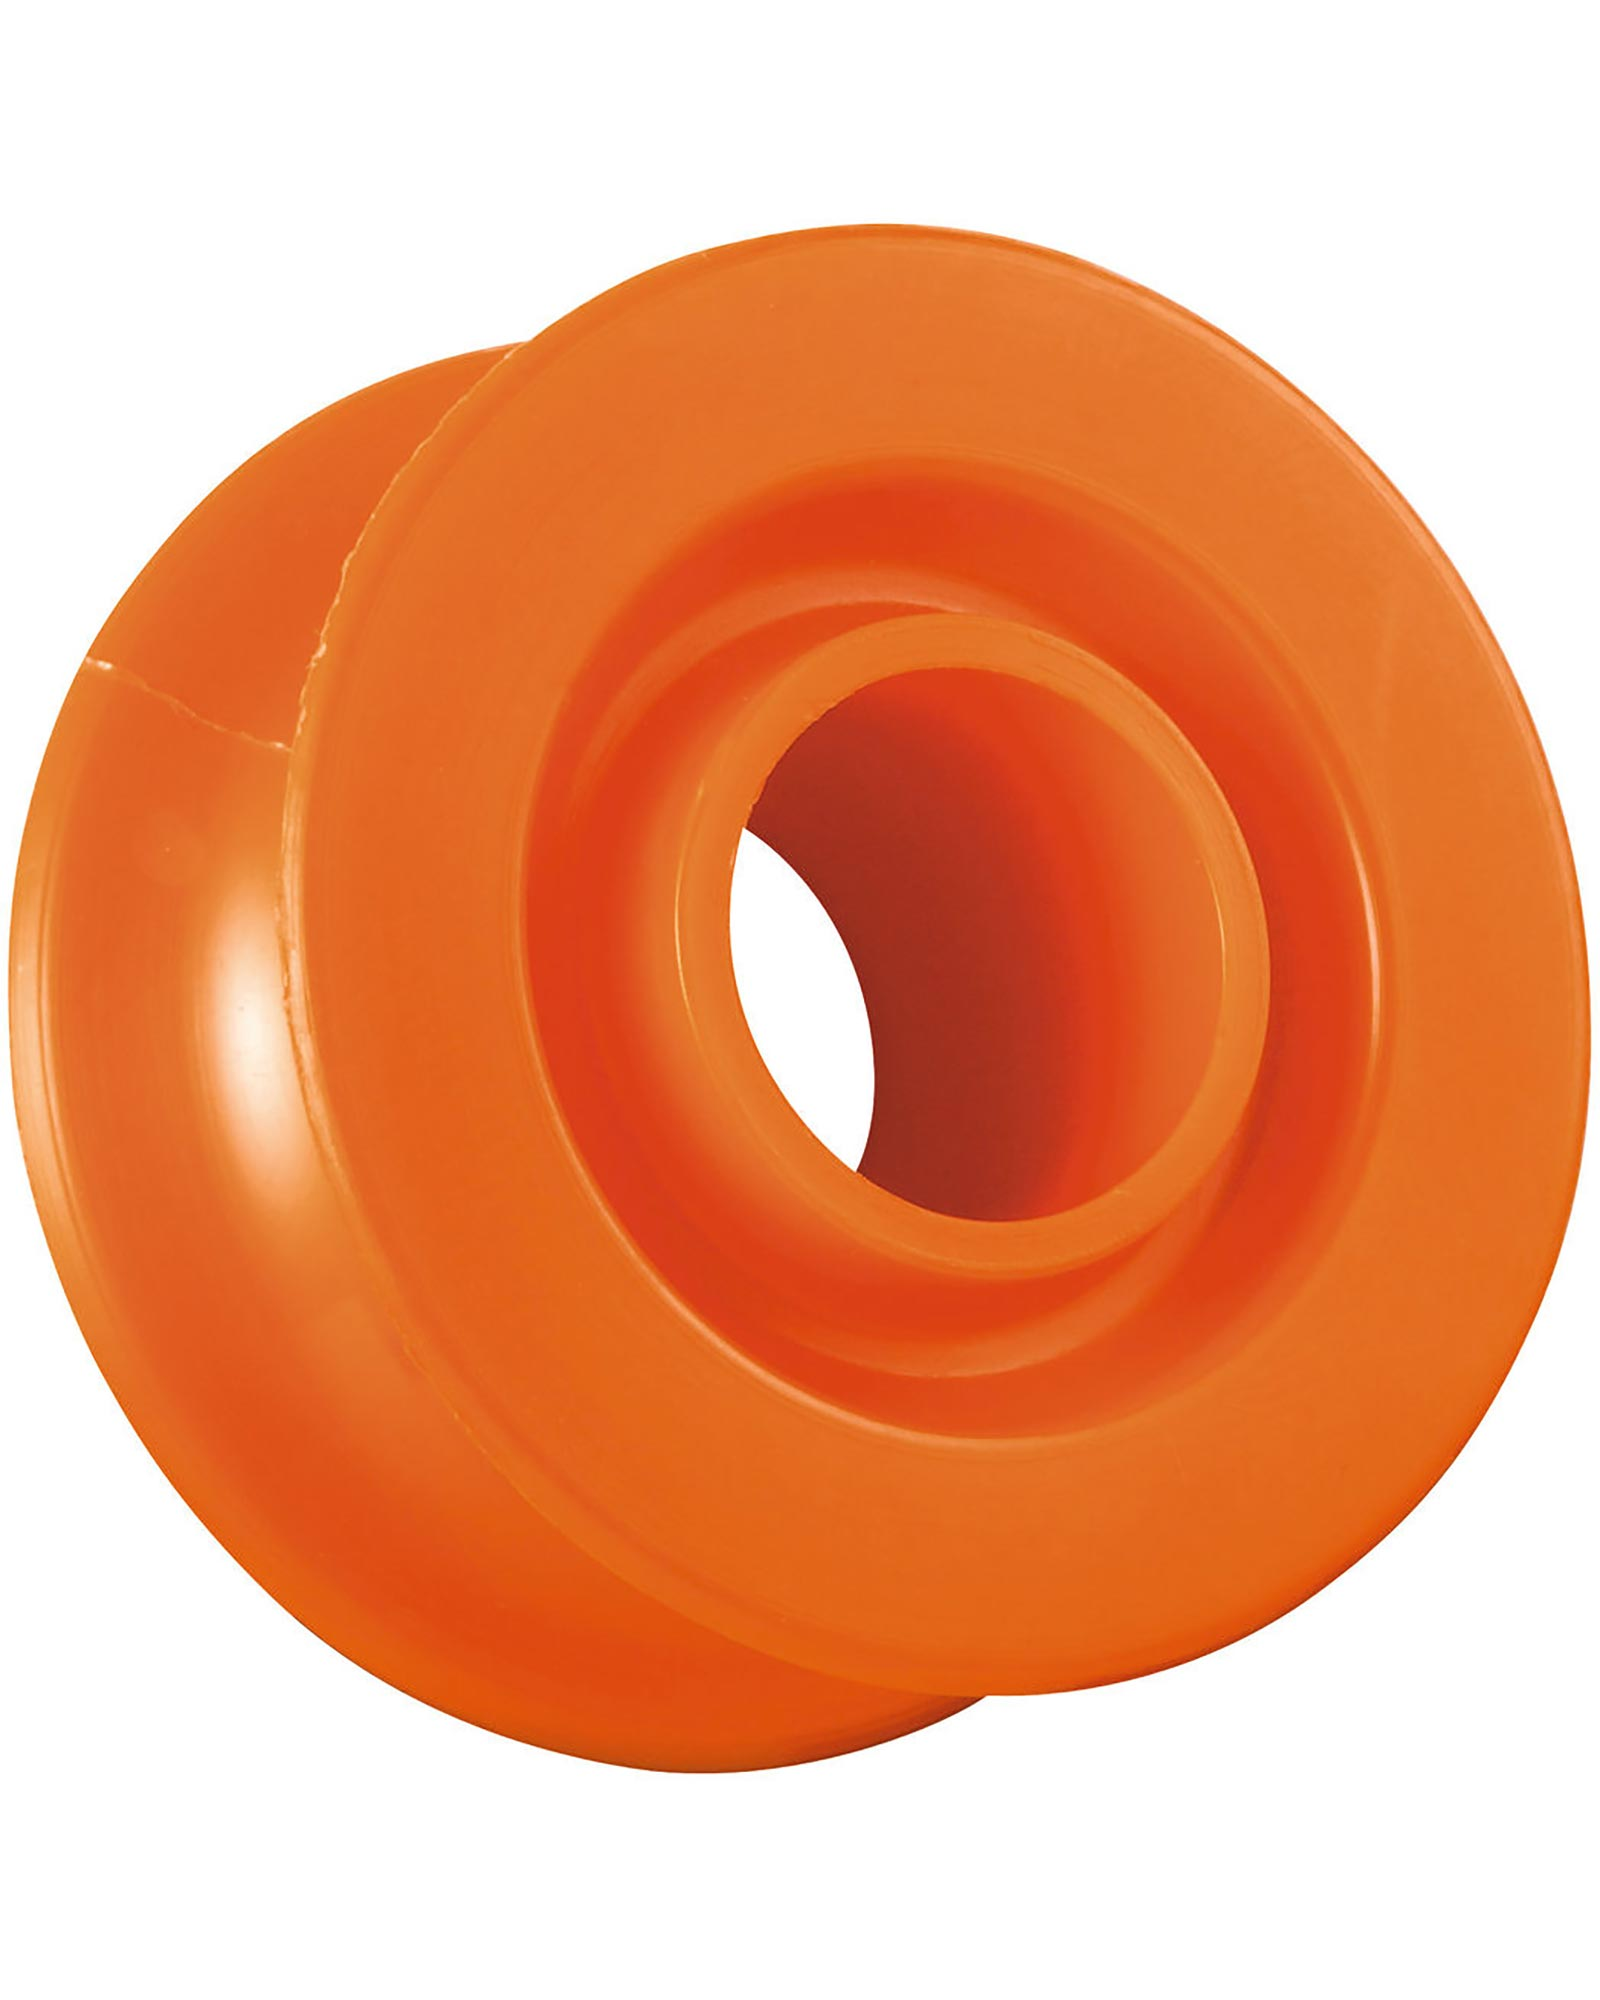 Product image of Petzl Ultralegere Pulley Wheel